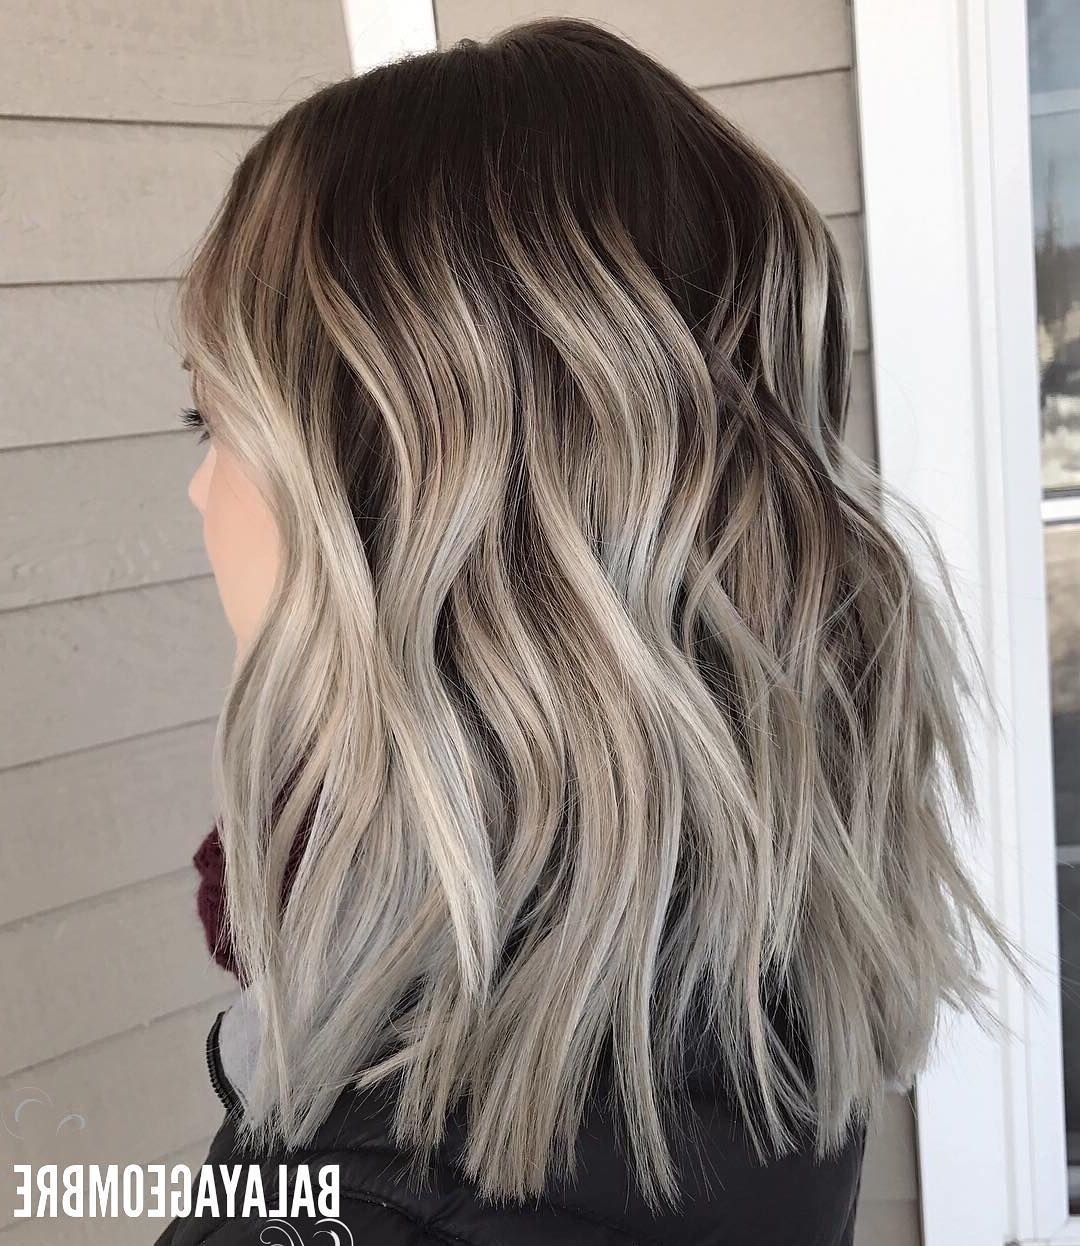 Widely Used Balayage Blonde Hairstyles With Layered Ends Throughout 10 Trendy Brown Balayage Hairstyles For Medium Length Hair 2018 –  (View 18 of 20)